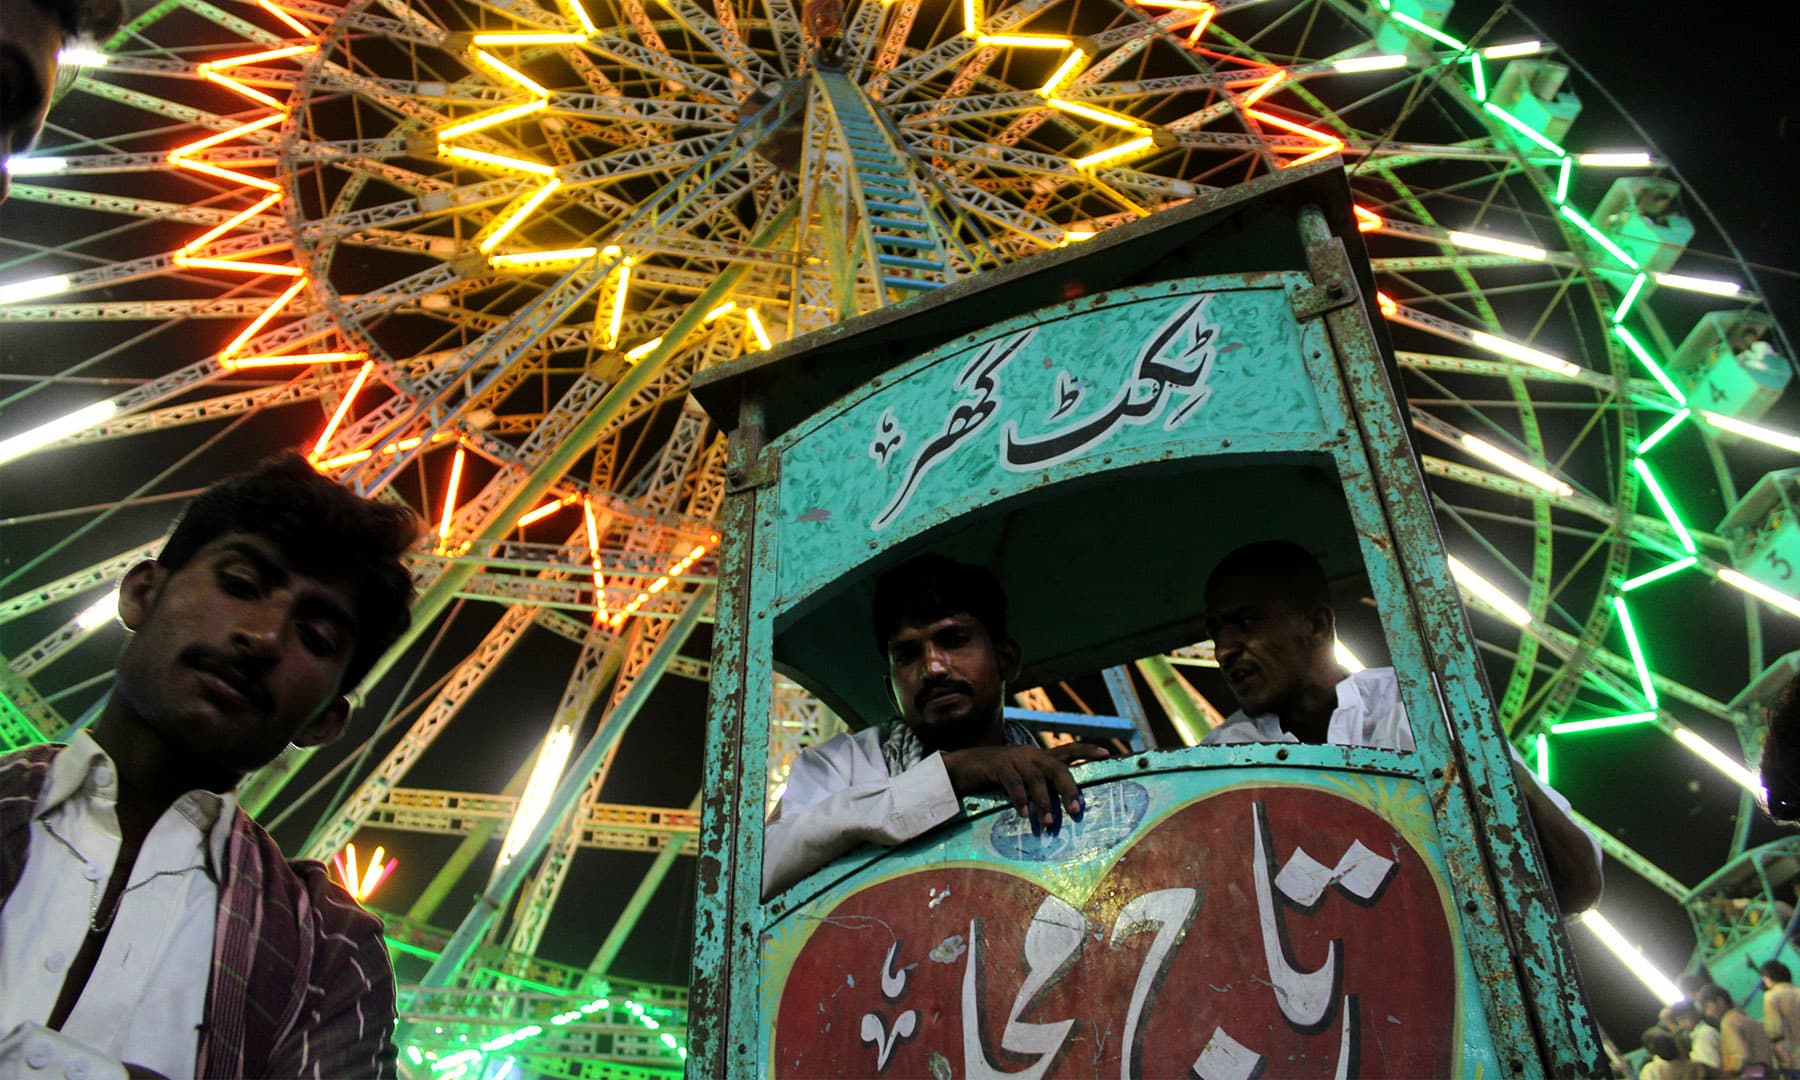 Ticket booth for the ferris wheel at Uch Sharif | Danyal Adam Khan